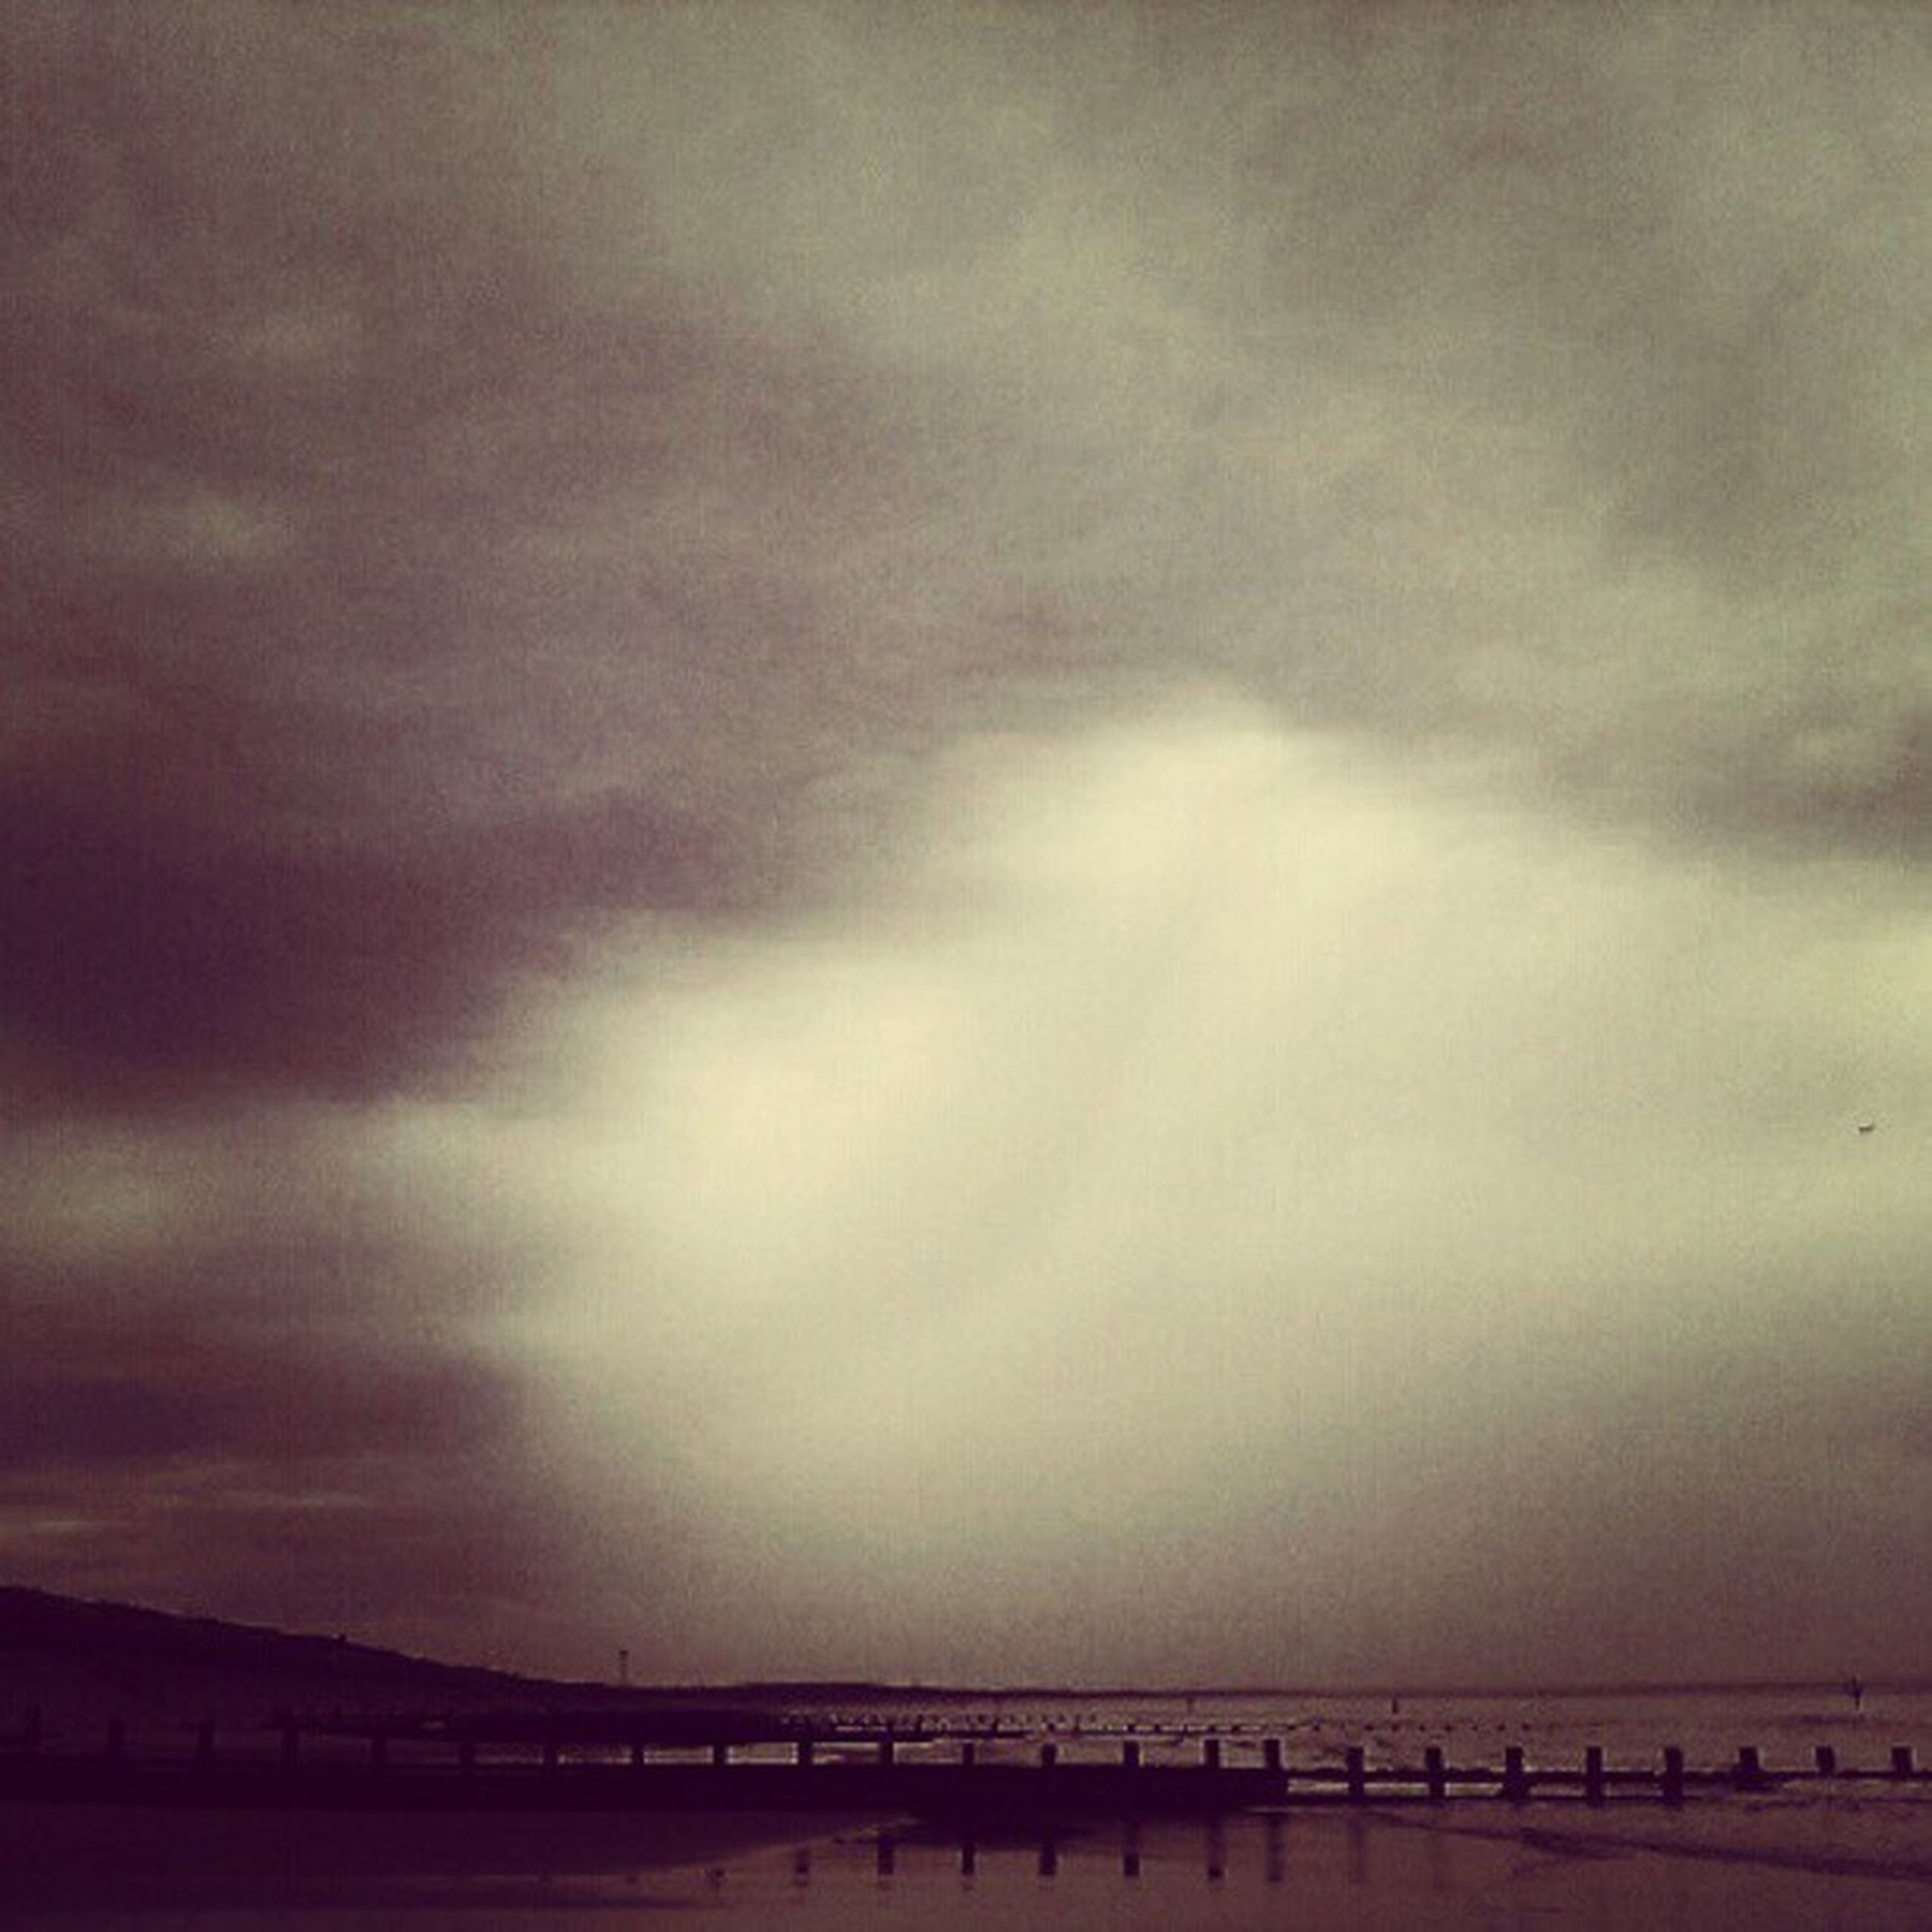 sky, sea, cloud - sky, cloudy, water, built structure, architecture, weather, scenics, nature, overcast, beauty in nature, dusk, silhouette, tranquility, tranquil scene, horizon over water, cloud, outdoors, bridge - man made structure